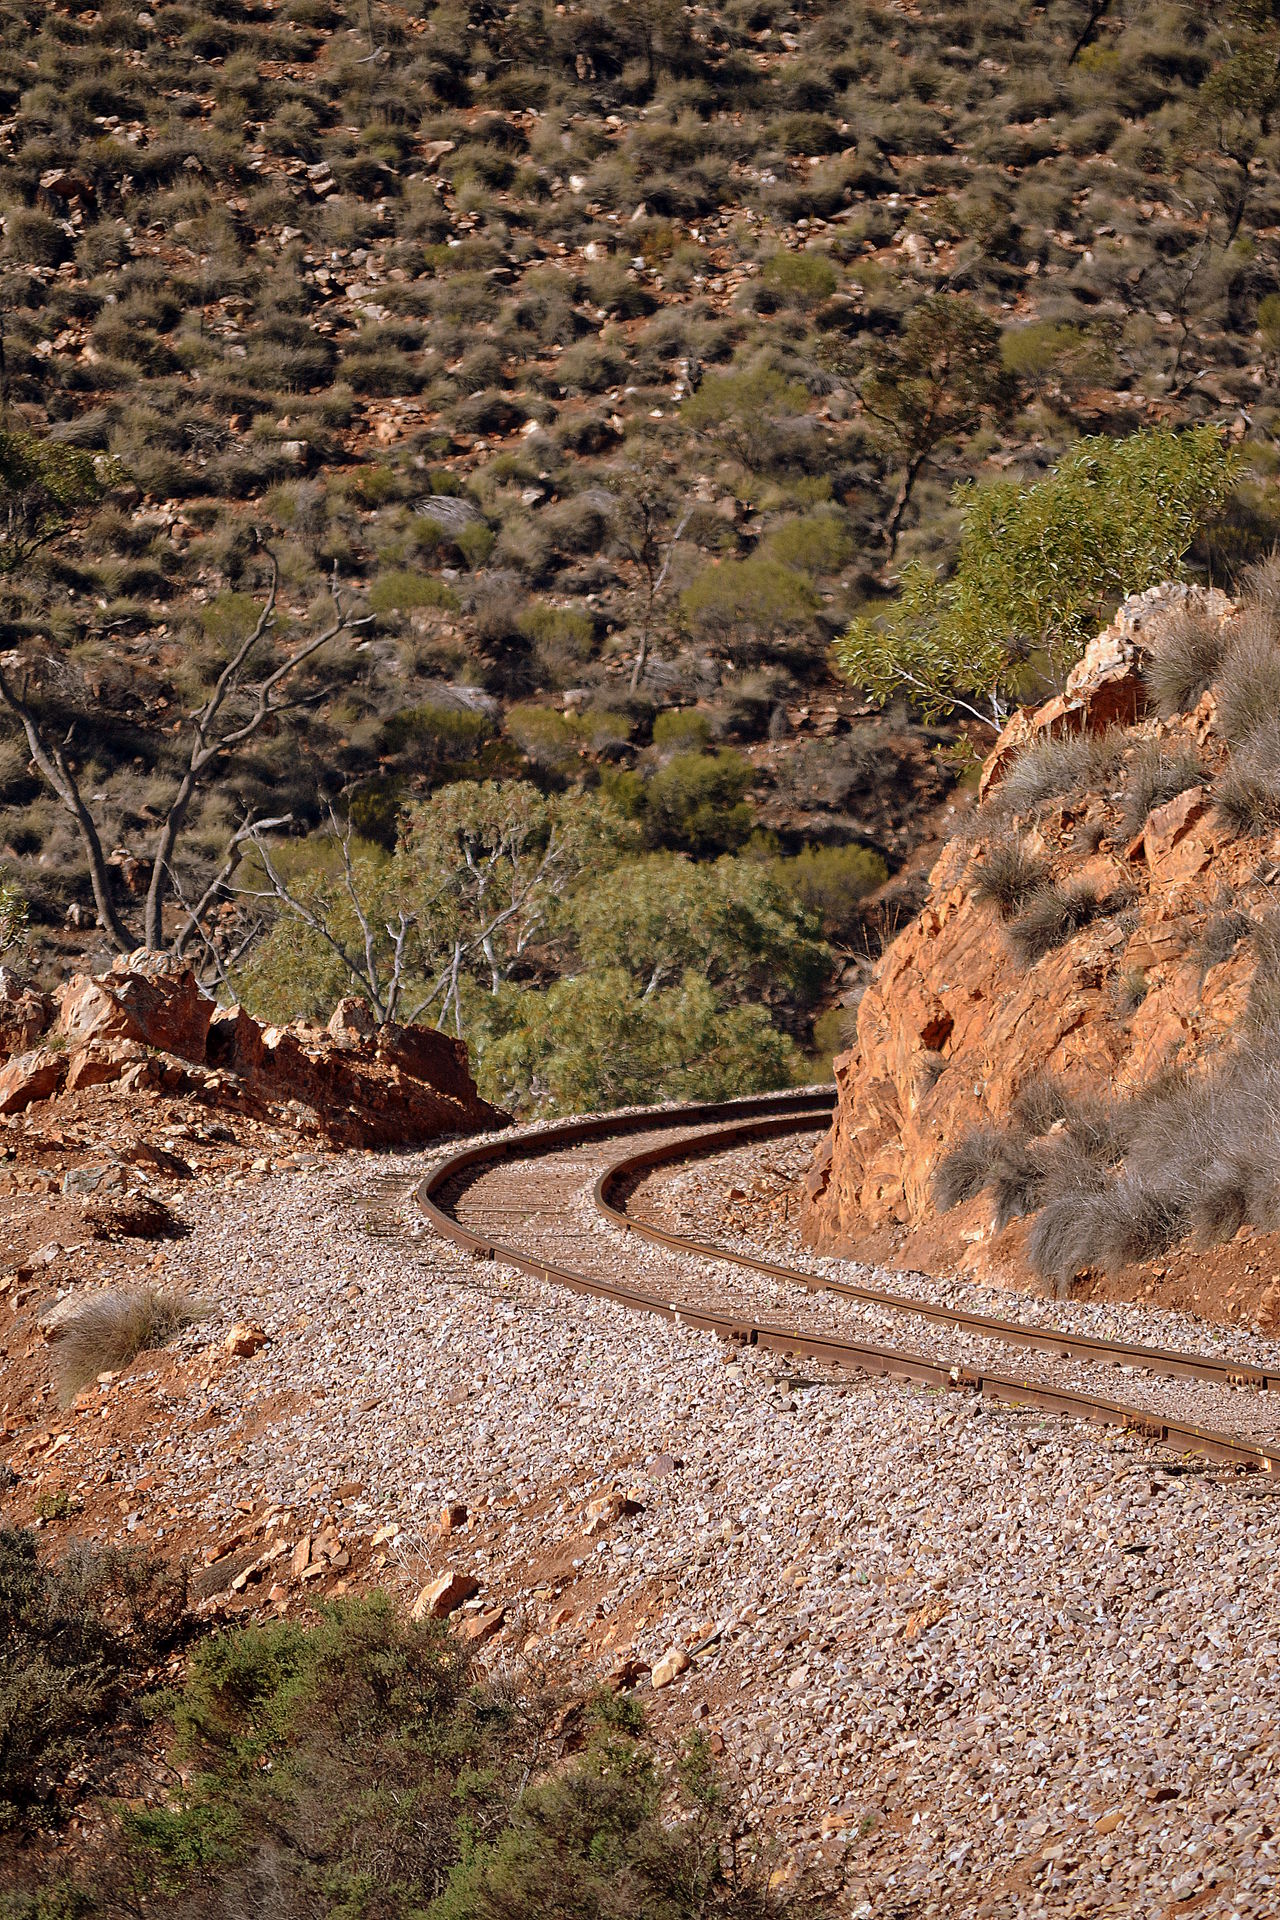 Beauty In Nature Blind Corner Landscape Outdoors Railroad Track Railway Track Rock - Object Track Winding Road